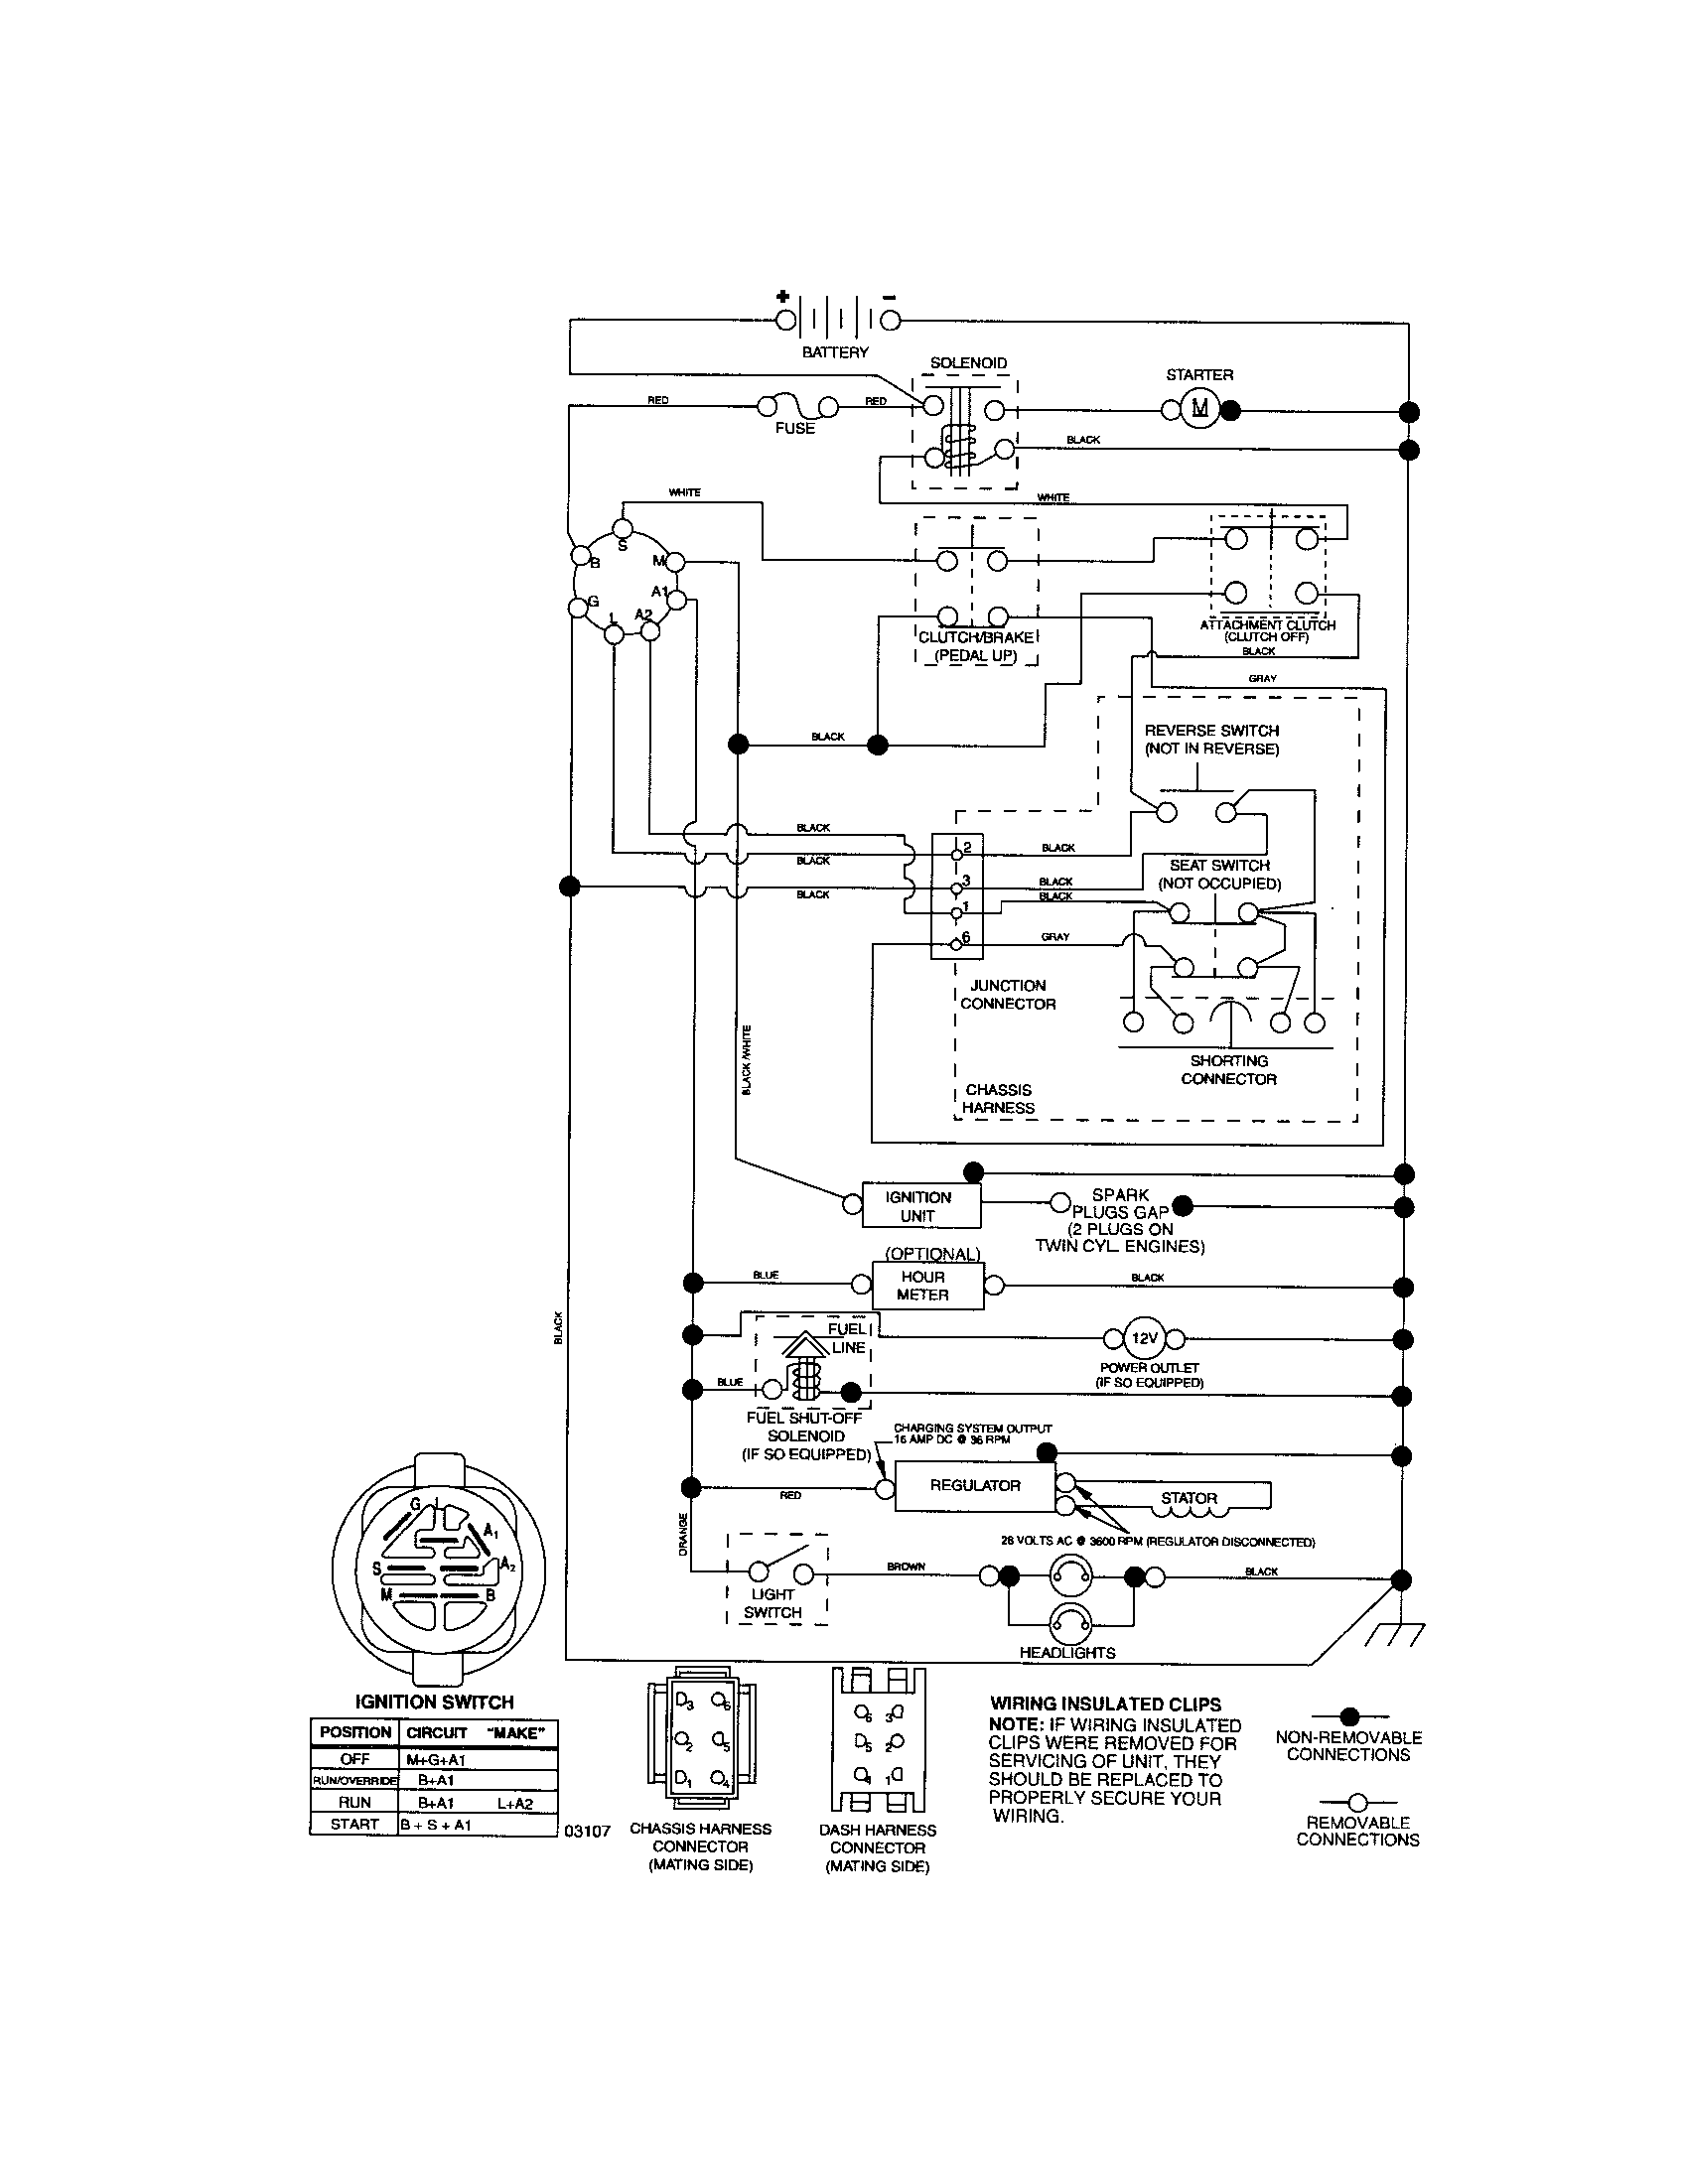 6af5f1447fd13c8443376822ddc1e105 craftsman riding mower electrical diagram wiring diagram wiring diagram for a craftsman riding lawn mower at bayanpartner.co